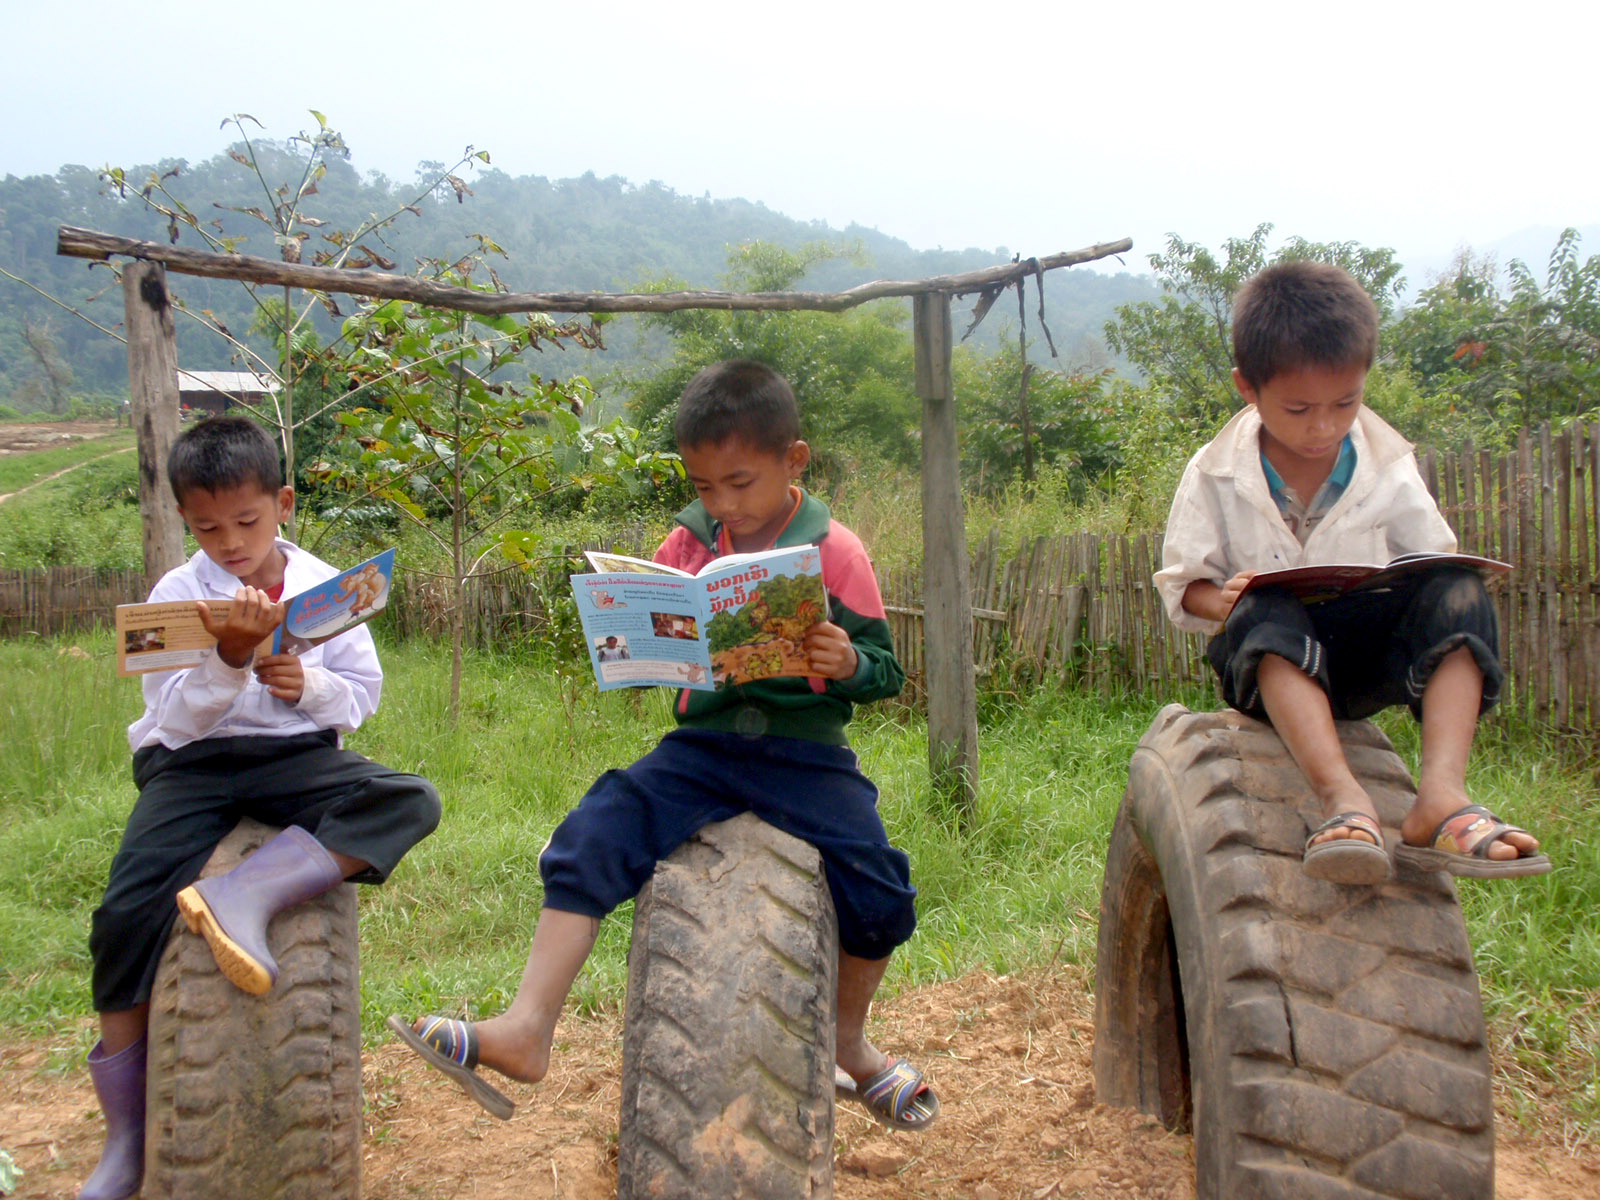 Perched on tires embedded into the ground of a grassy field, three young boys read.